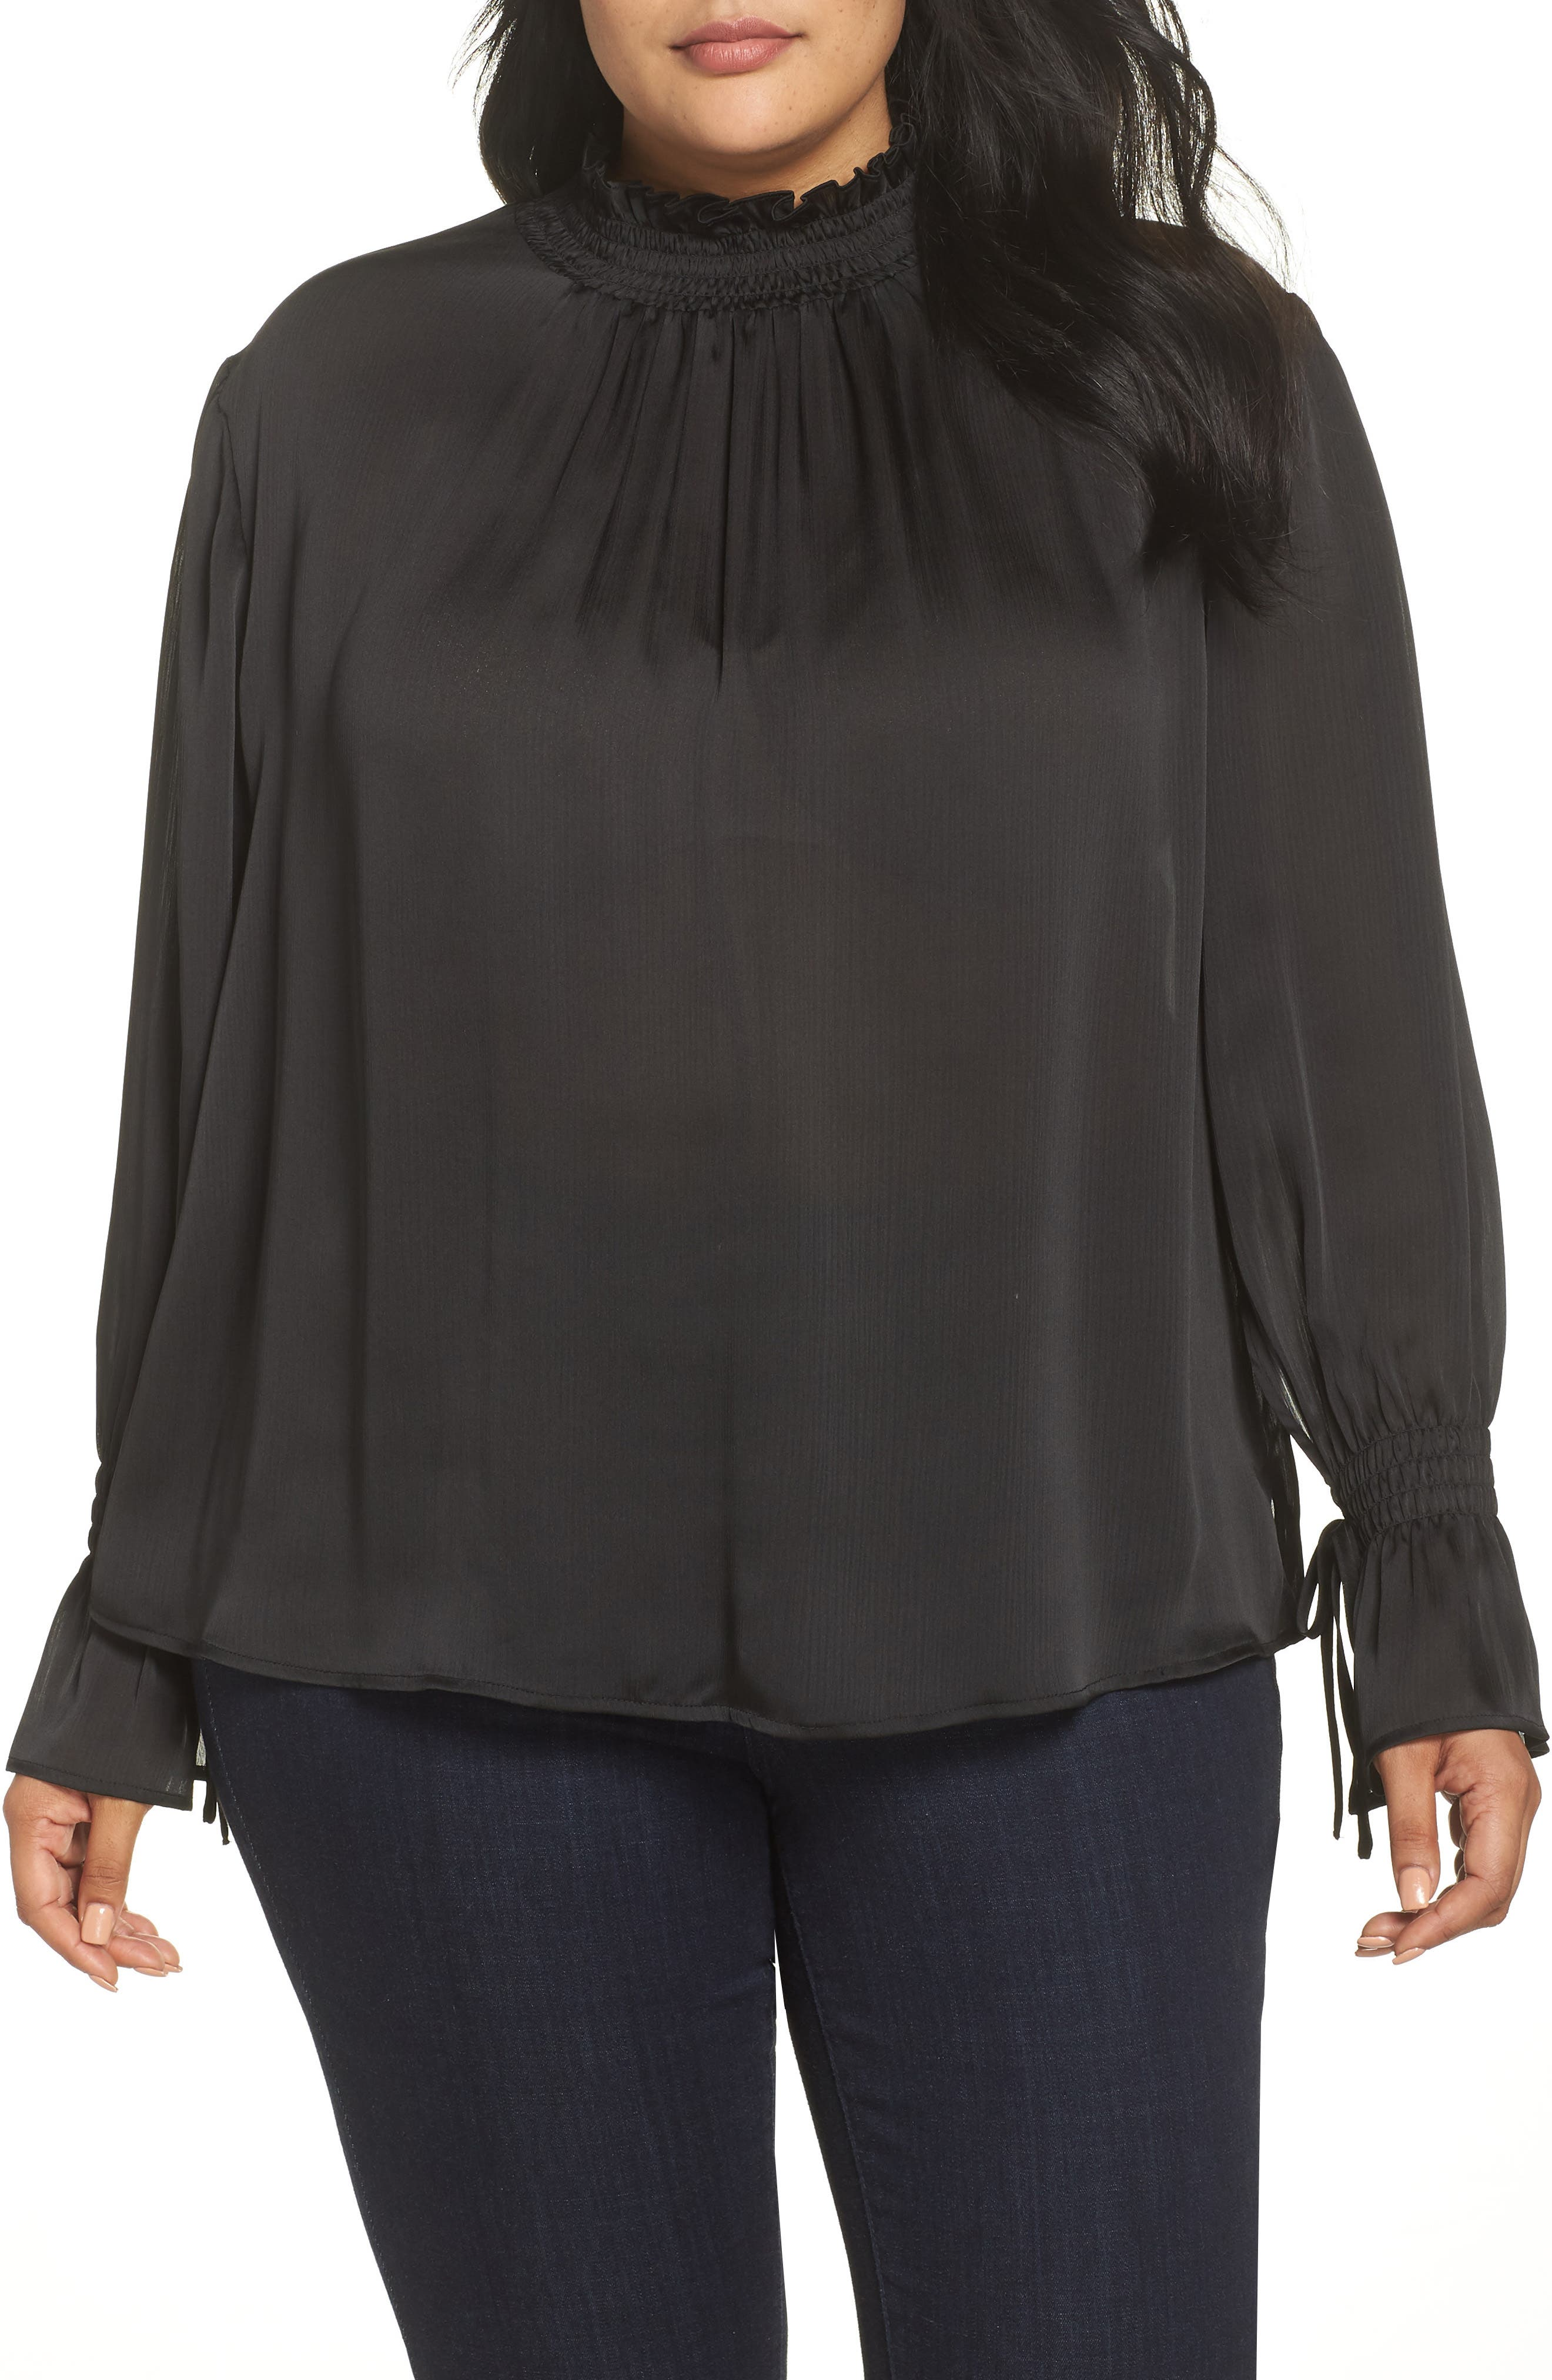 VINCE CAMUTO,                             Flare Tie Cuff Satin Blouse,                             Main thumbnail 1, color,                             004